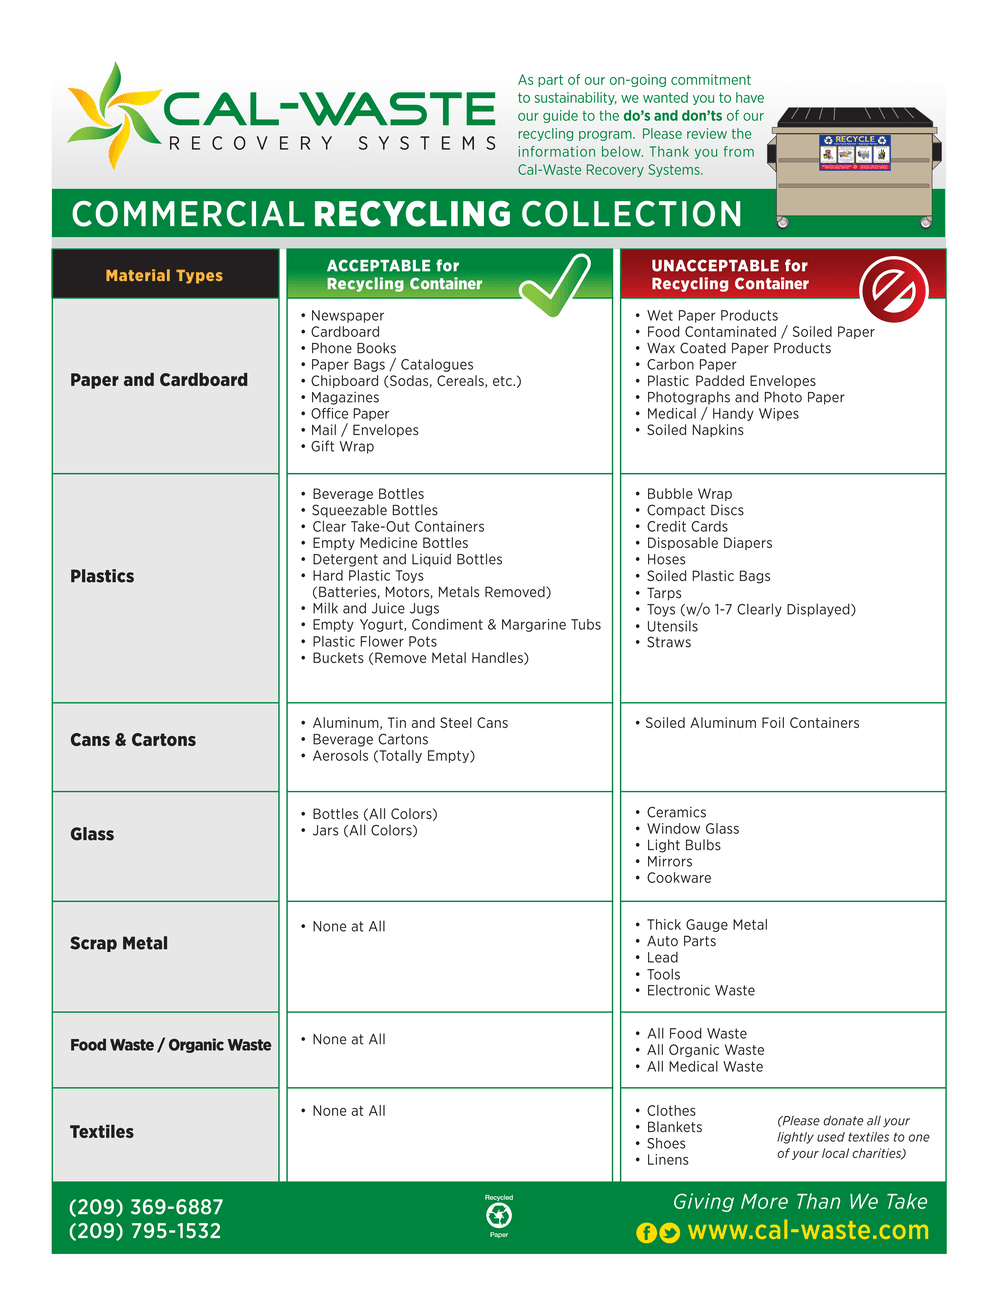 Recyclables List-Commercial.png